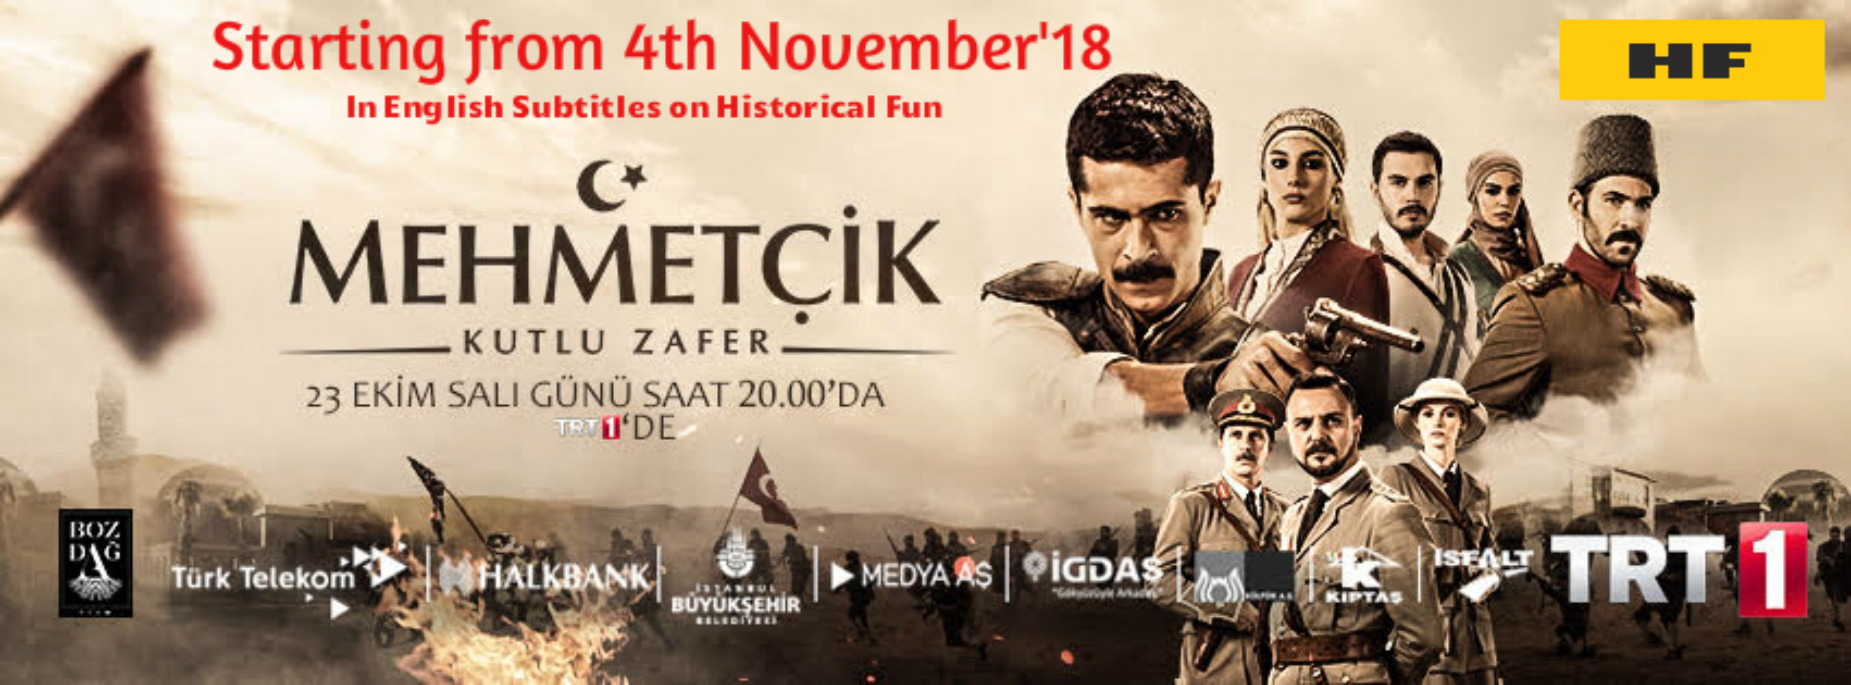 Historical Fun TV - Watch Turkish movies and tv shows